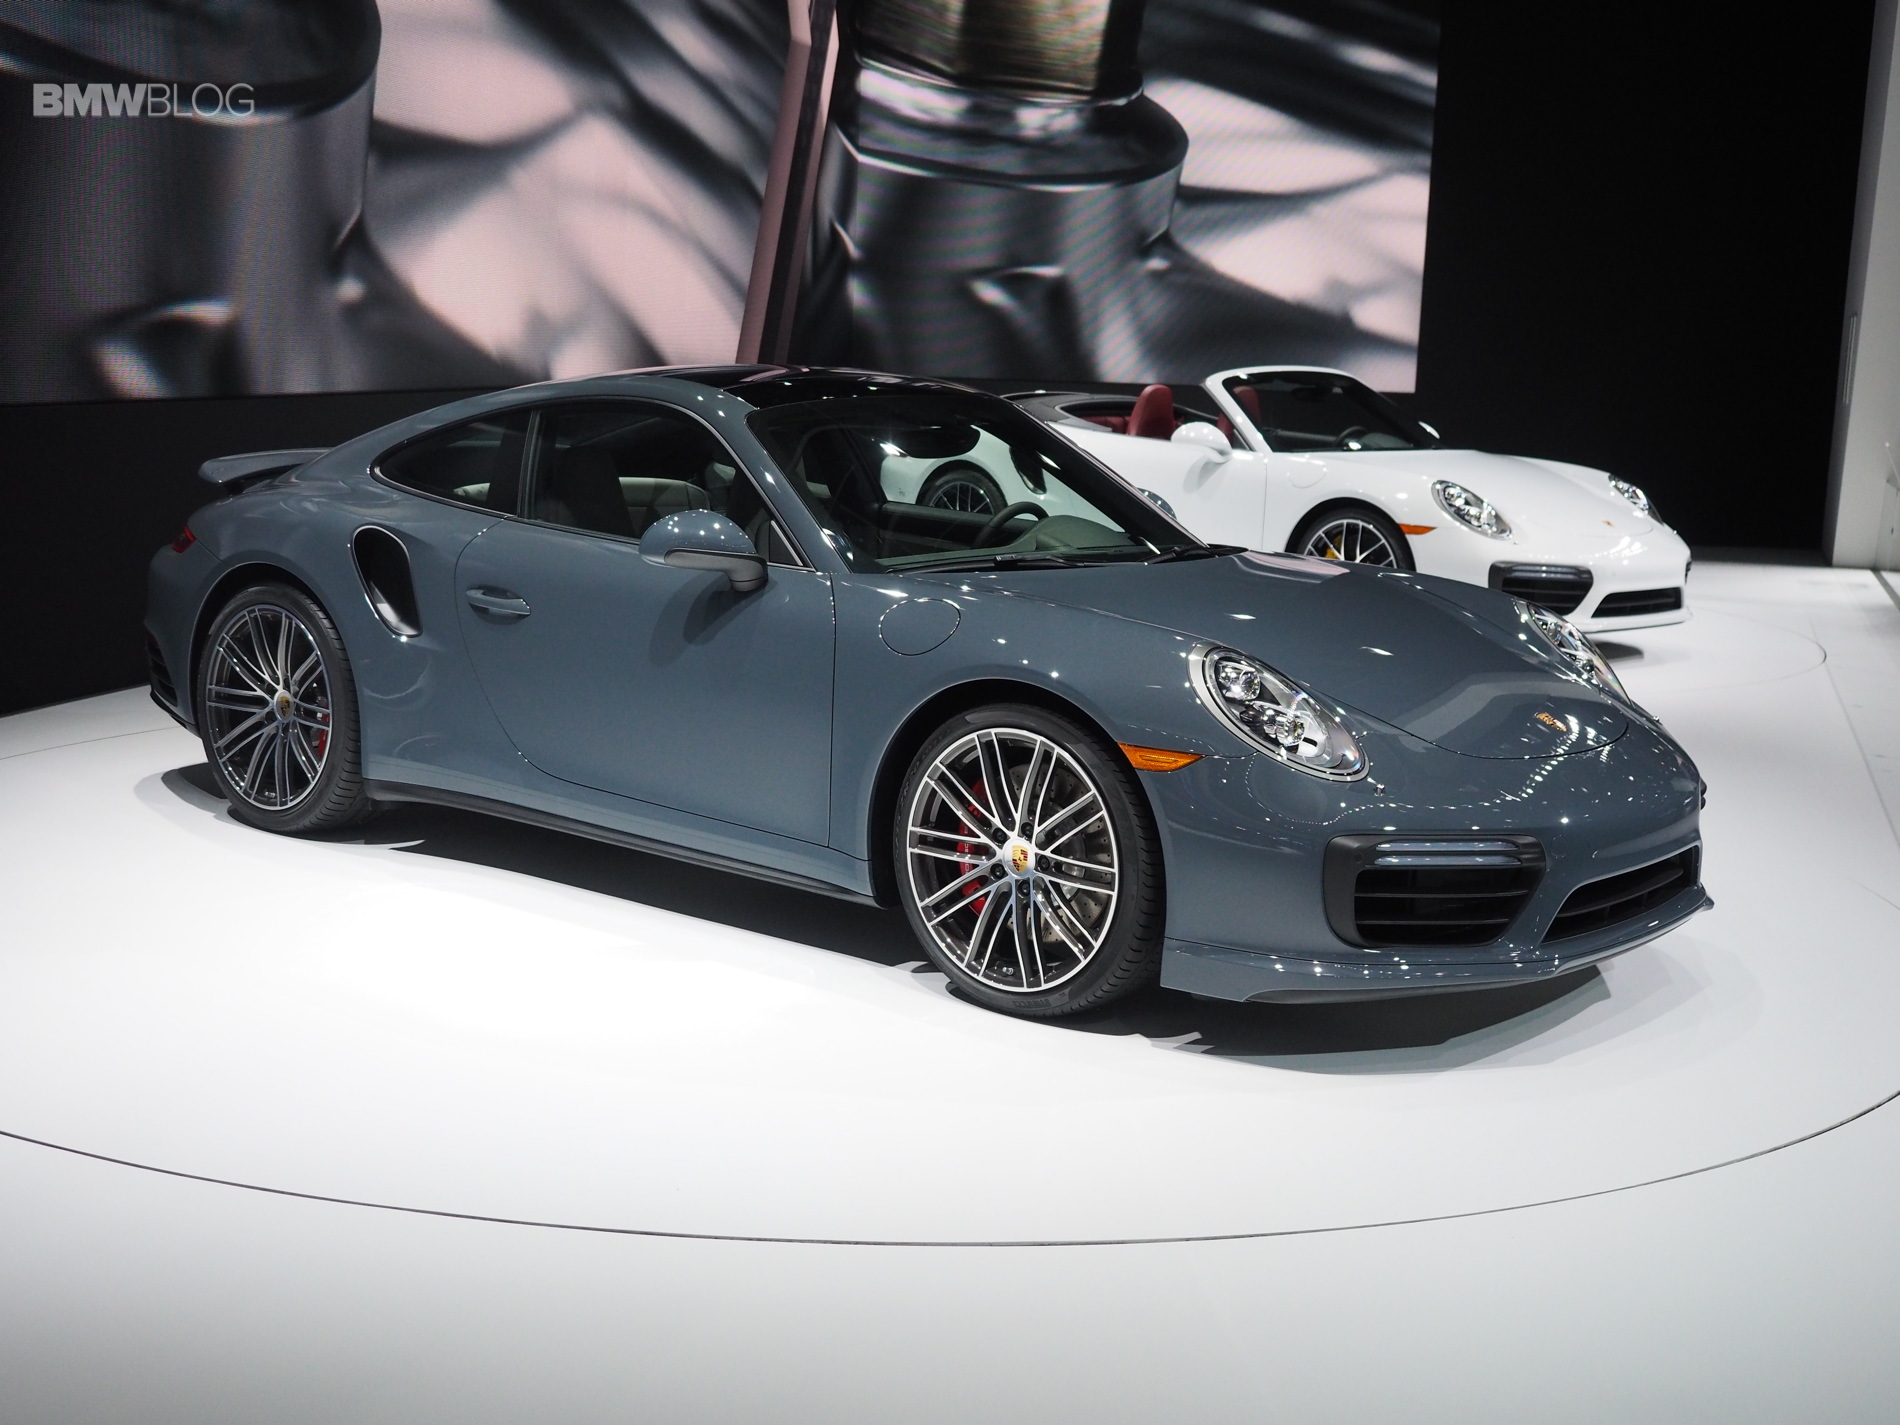 New Porsche Turbo Images on Newest Acura Model